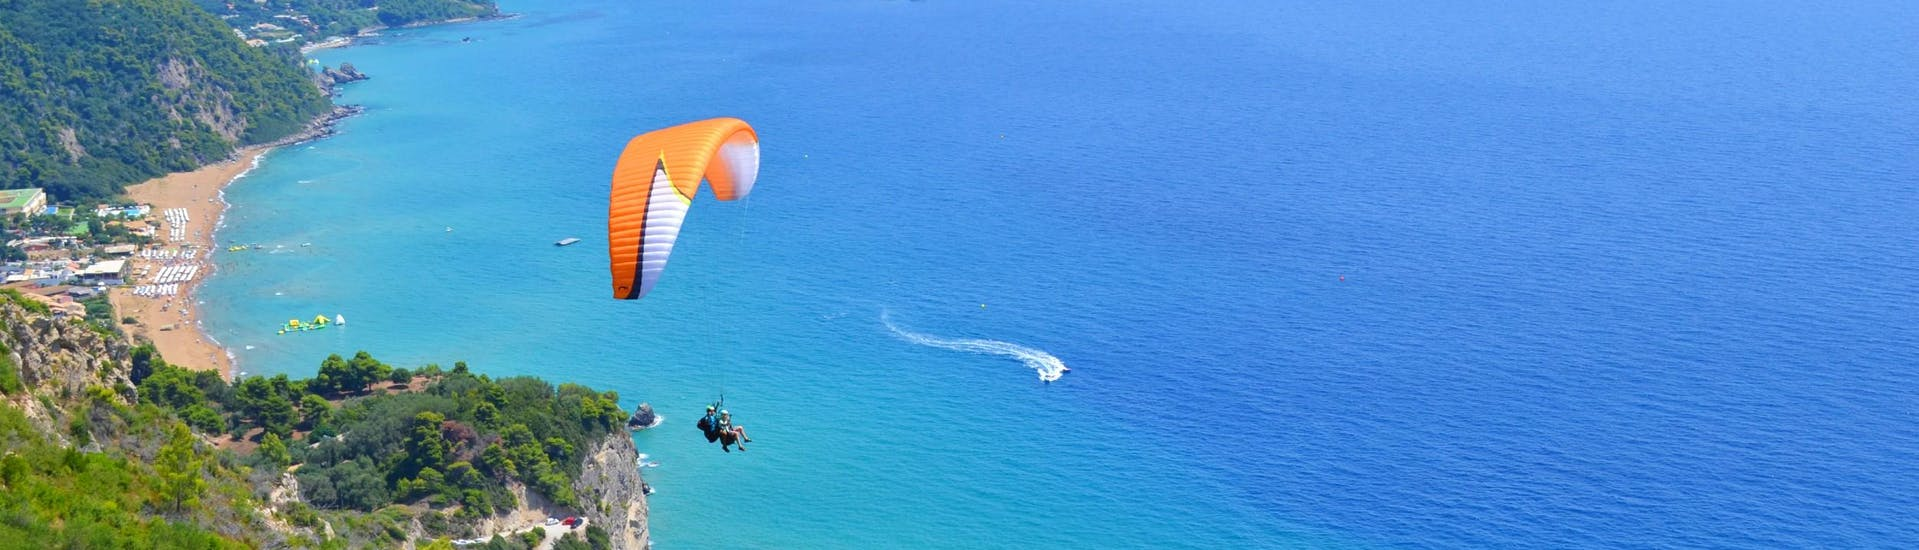 While Tandem Paragliding in Corfu a tandem pilot from Corfu Paragliding and his passenger are gliding over the turquoise water of the Ionian Sea.